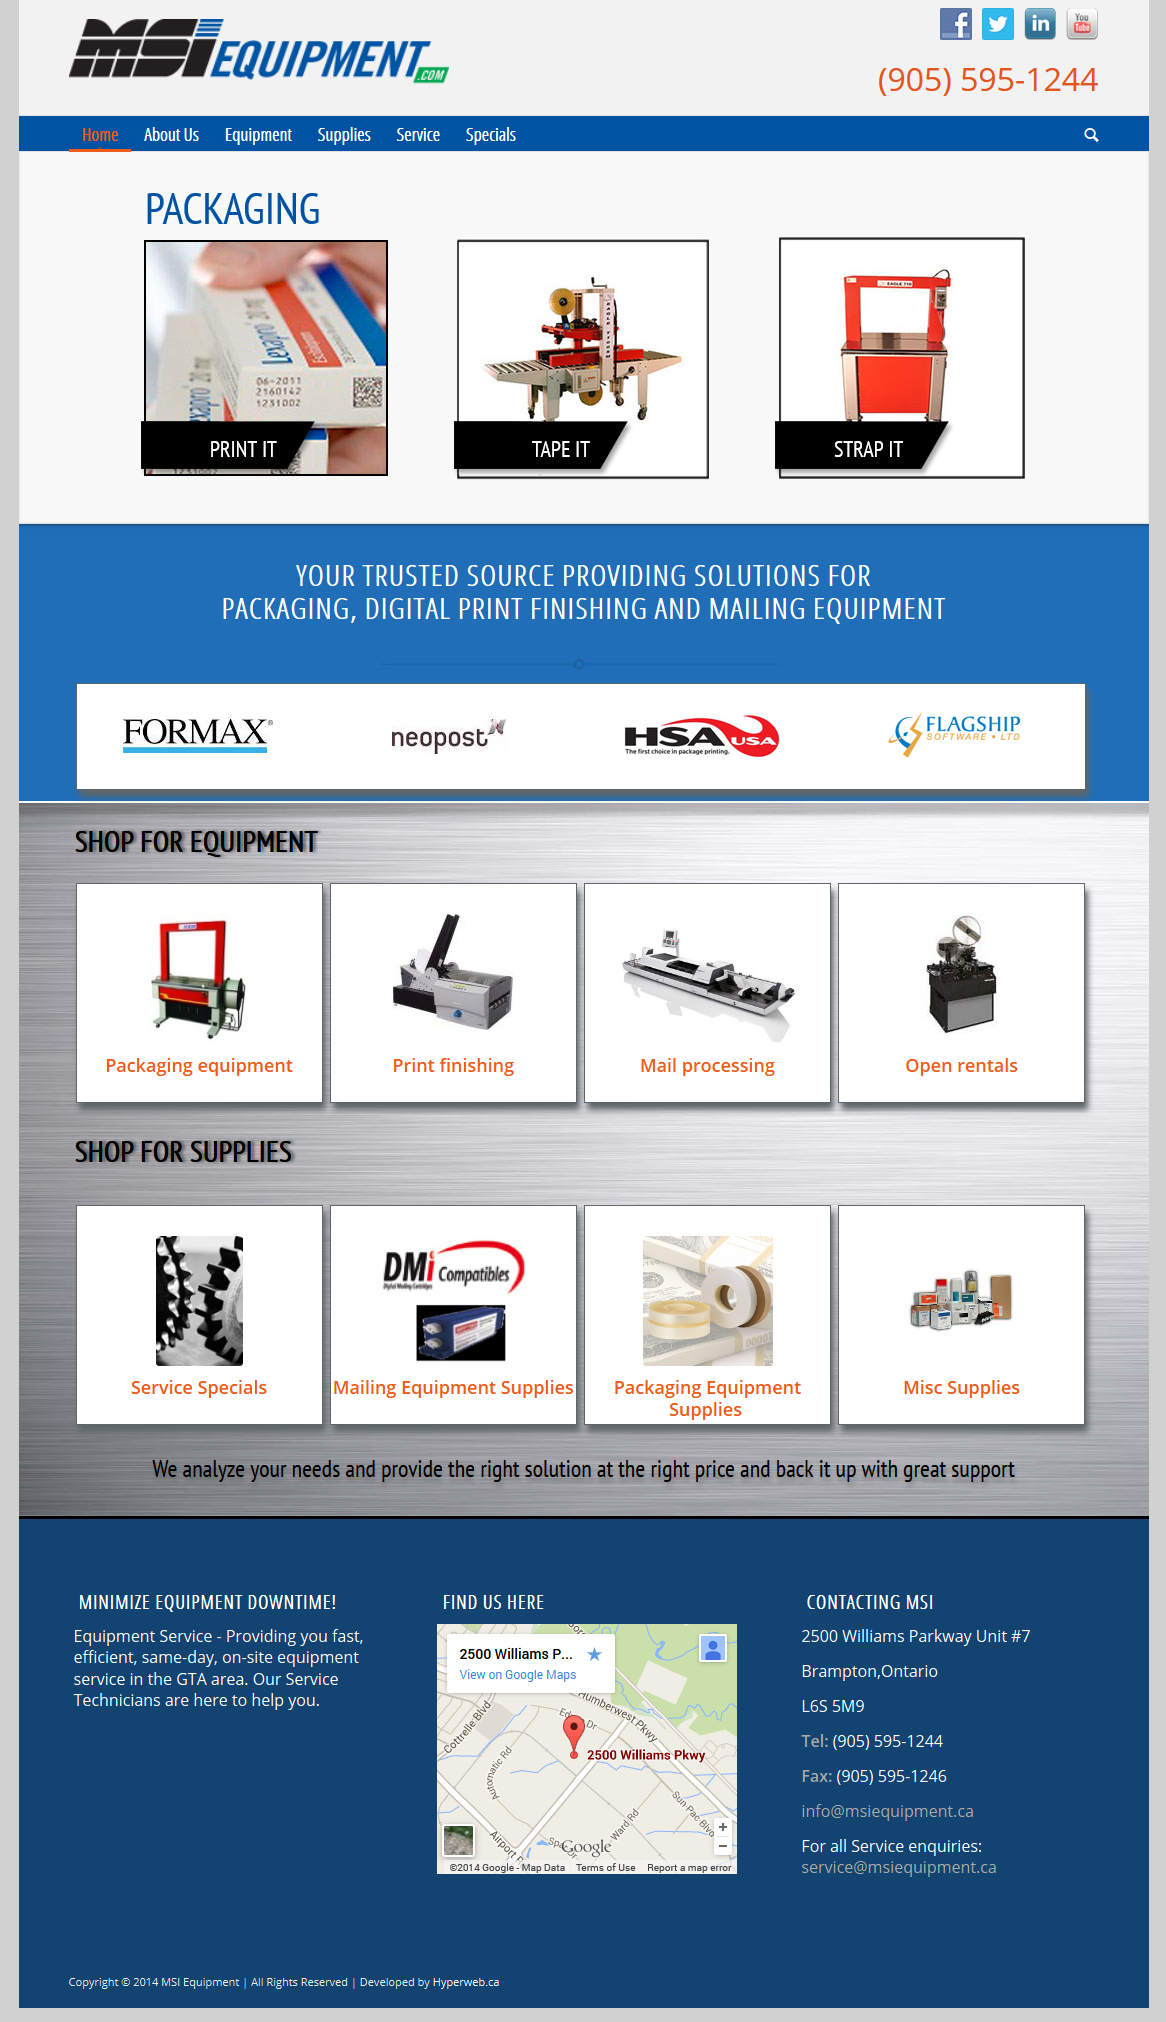 MSI Equipment - Packaging and Mailing Equipment